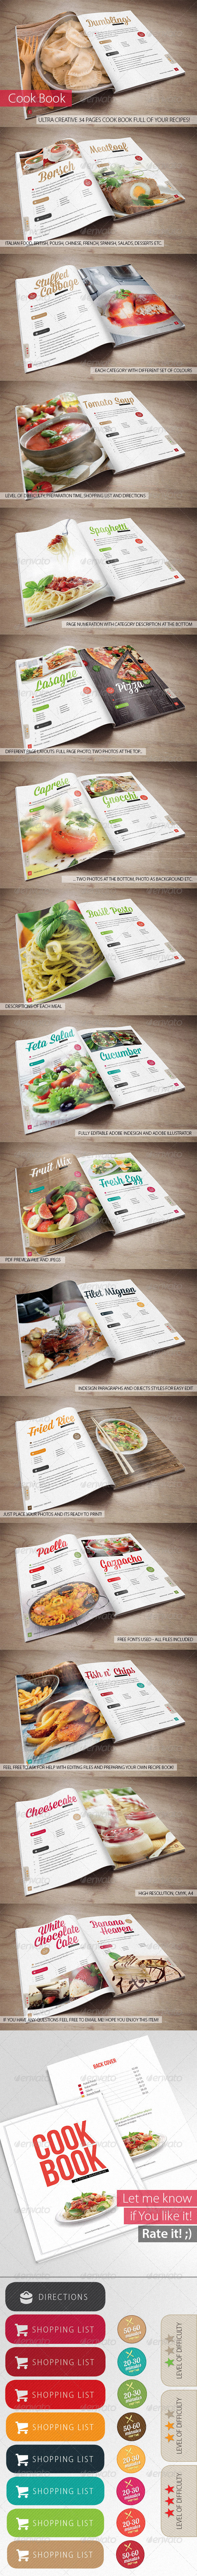 Cook Book Your Recipes